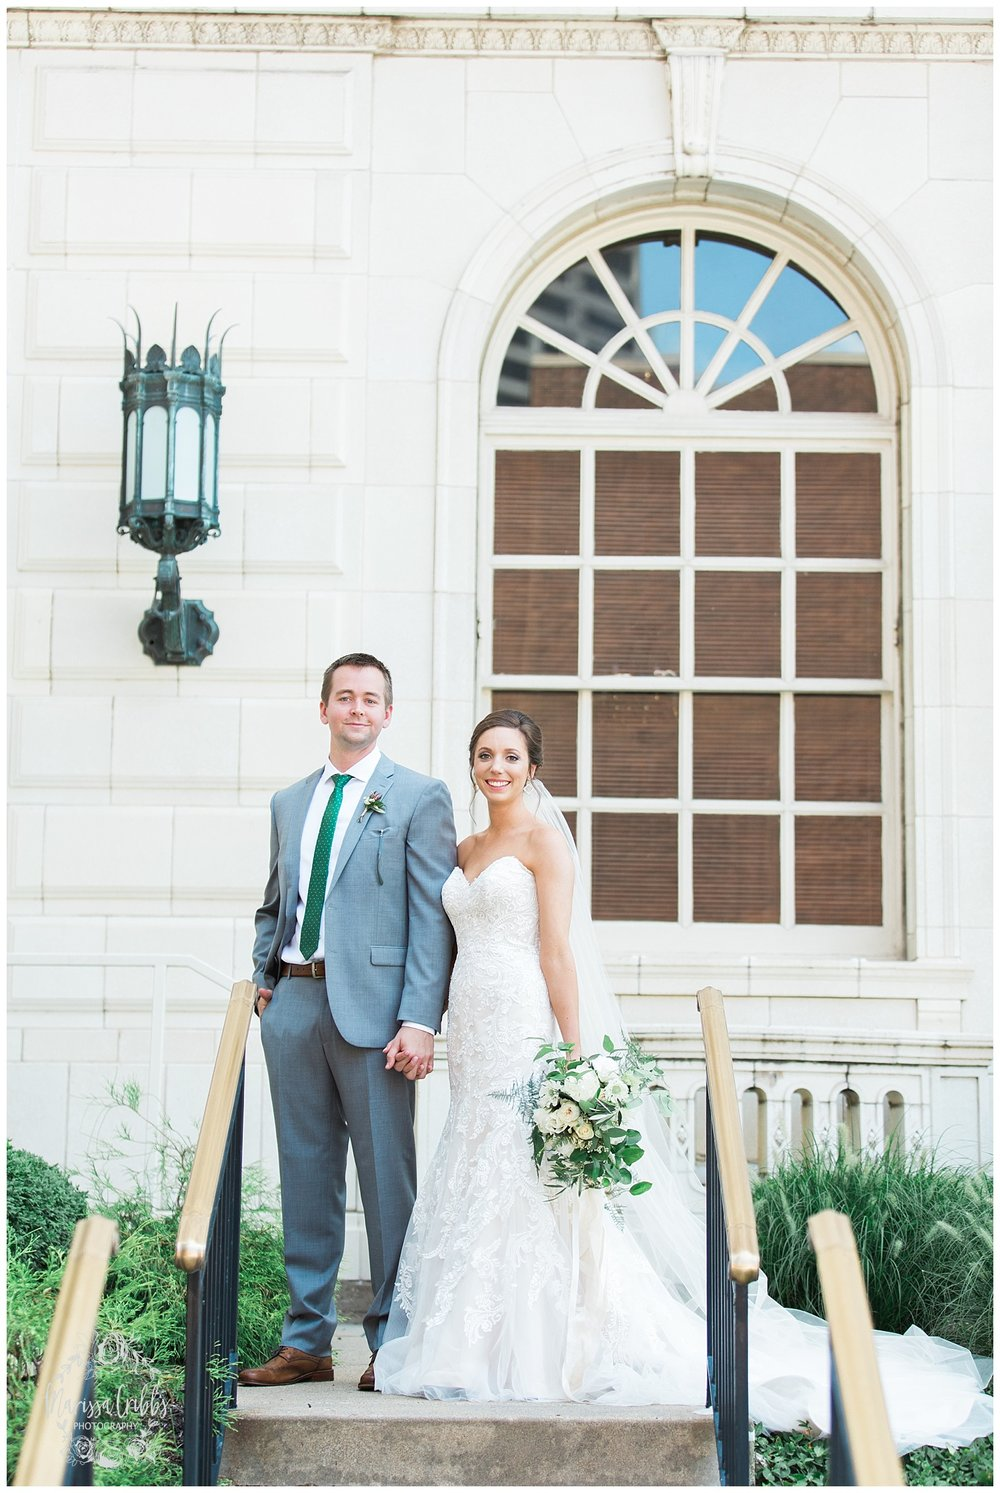 FEASTS OF FANCY KC WEDDING | THE HOBBS WEDDING KANSAS CITY | MARISSA CRIBBS PHOTOGRAPHY_2188.jpg